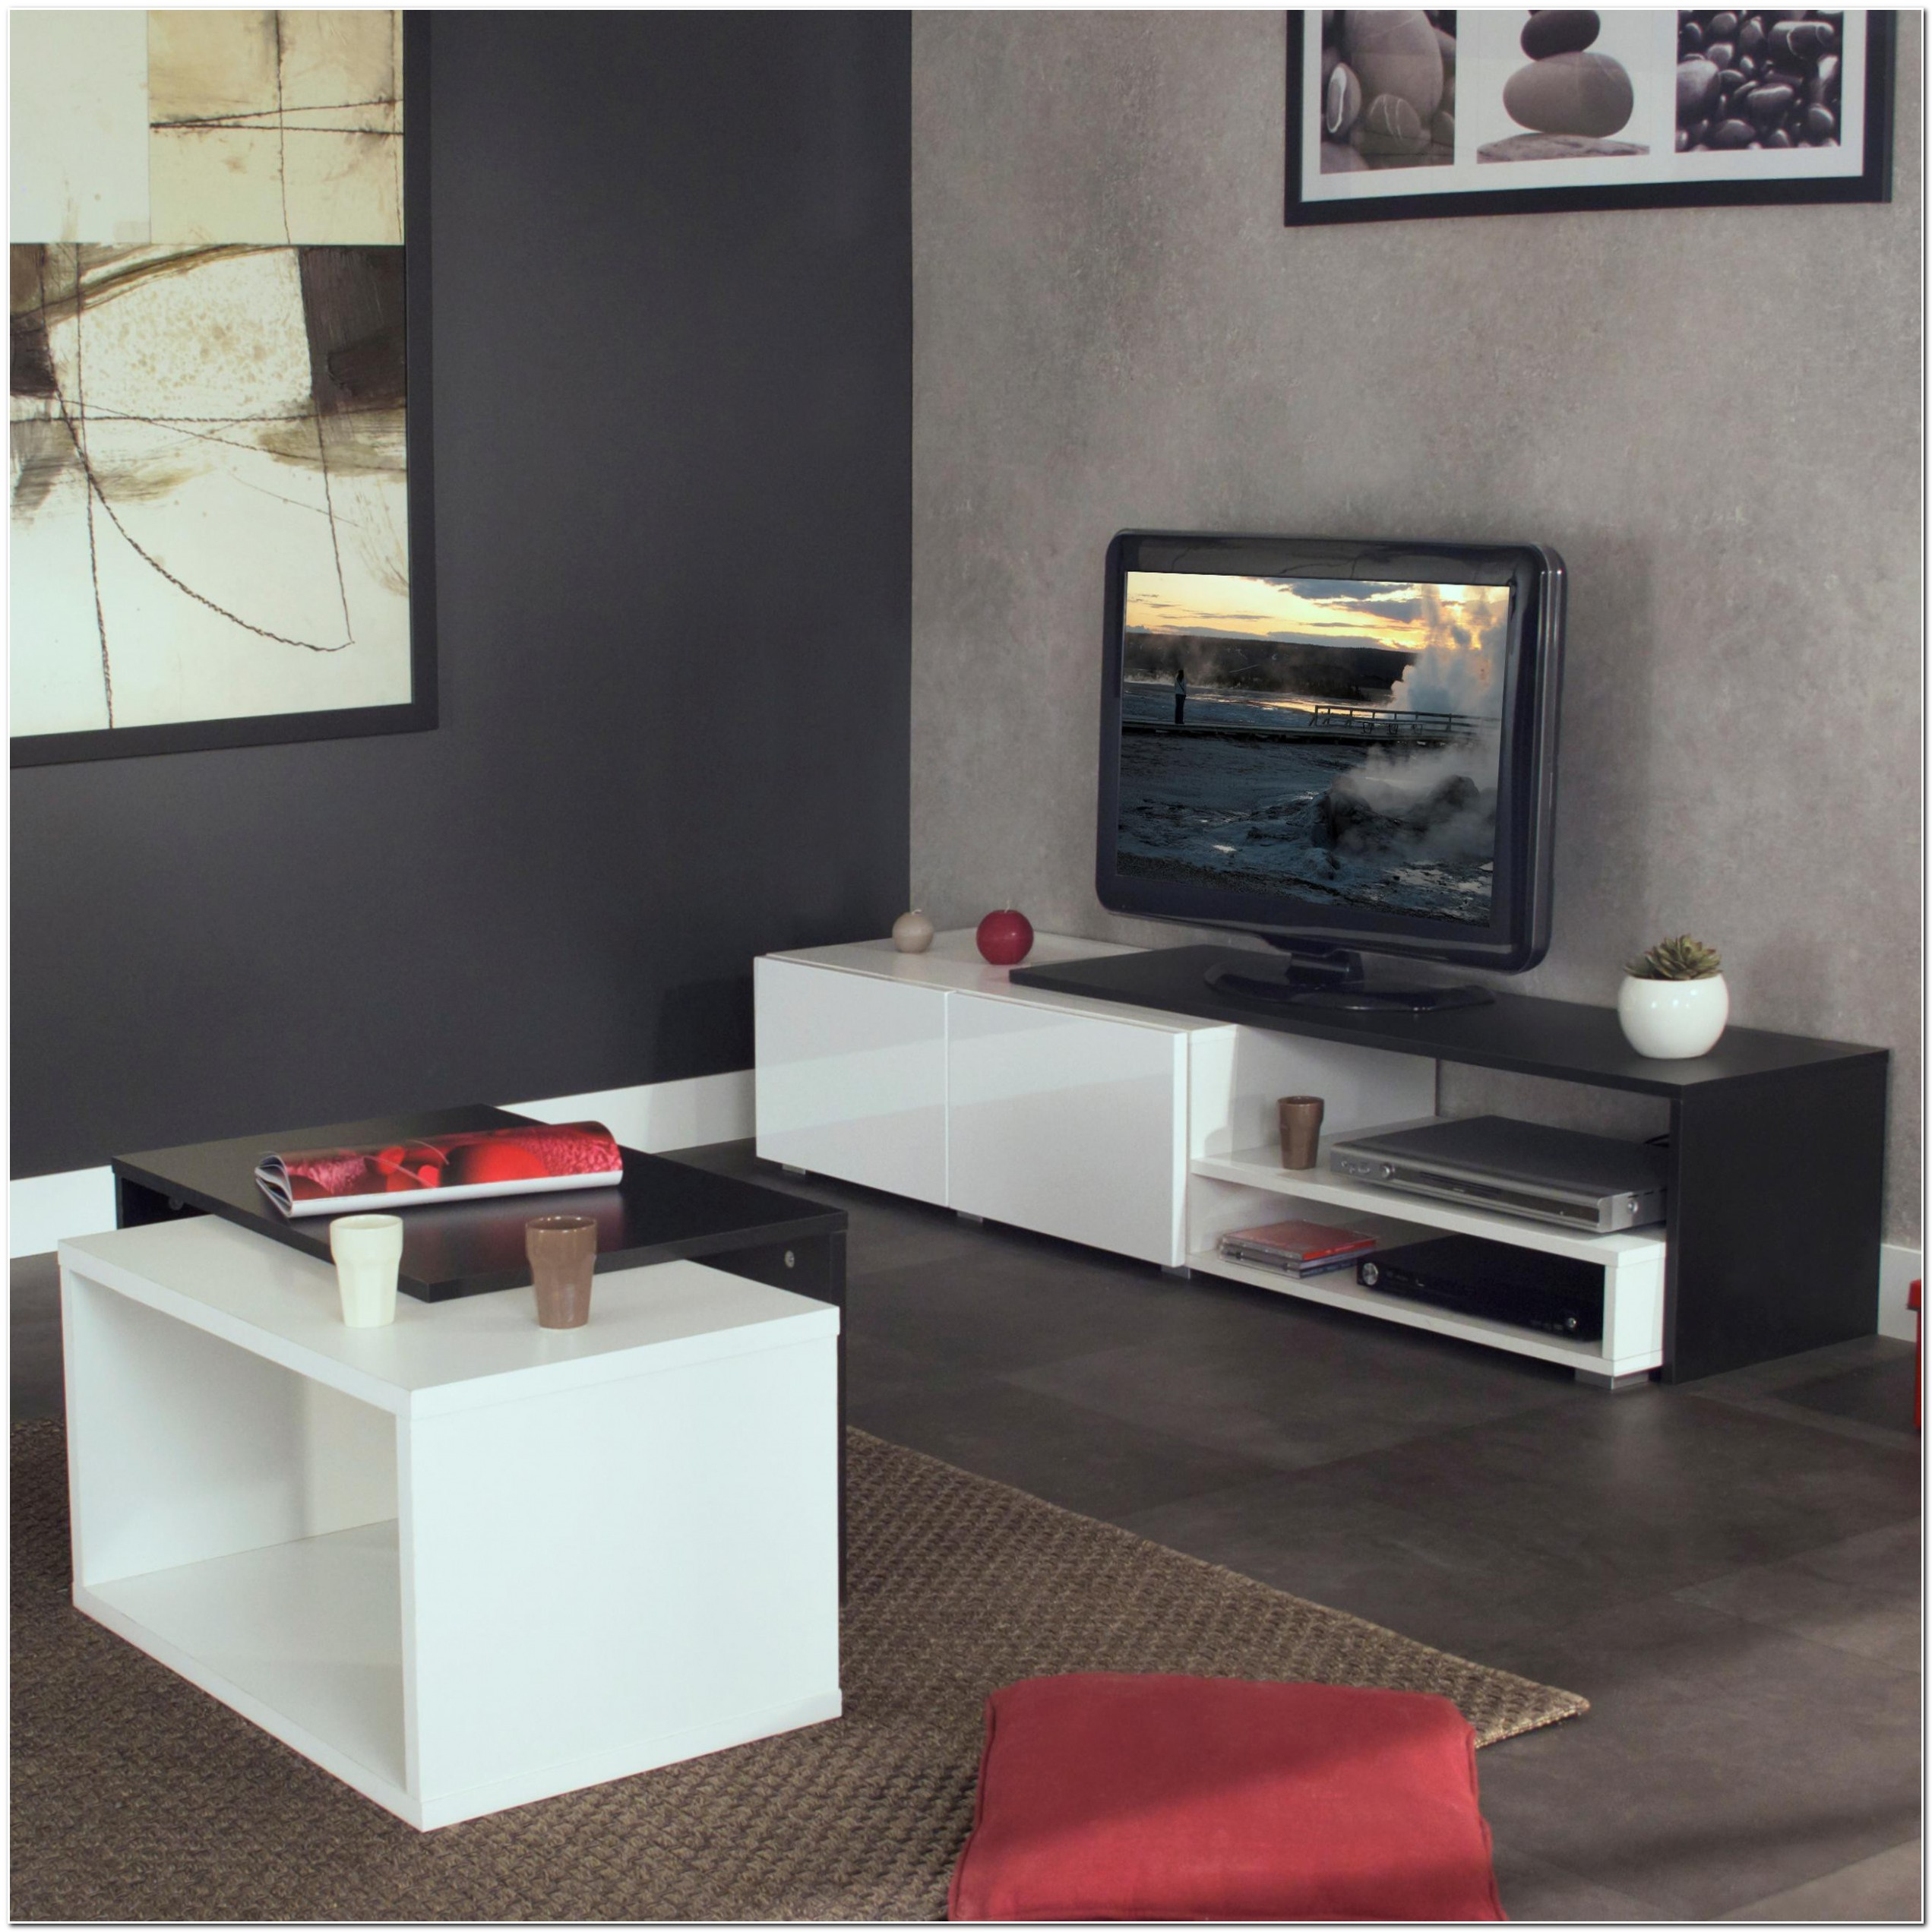 Meuble Hifi Design Italien